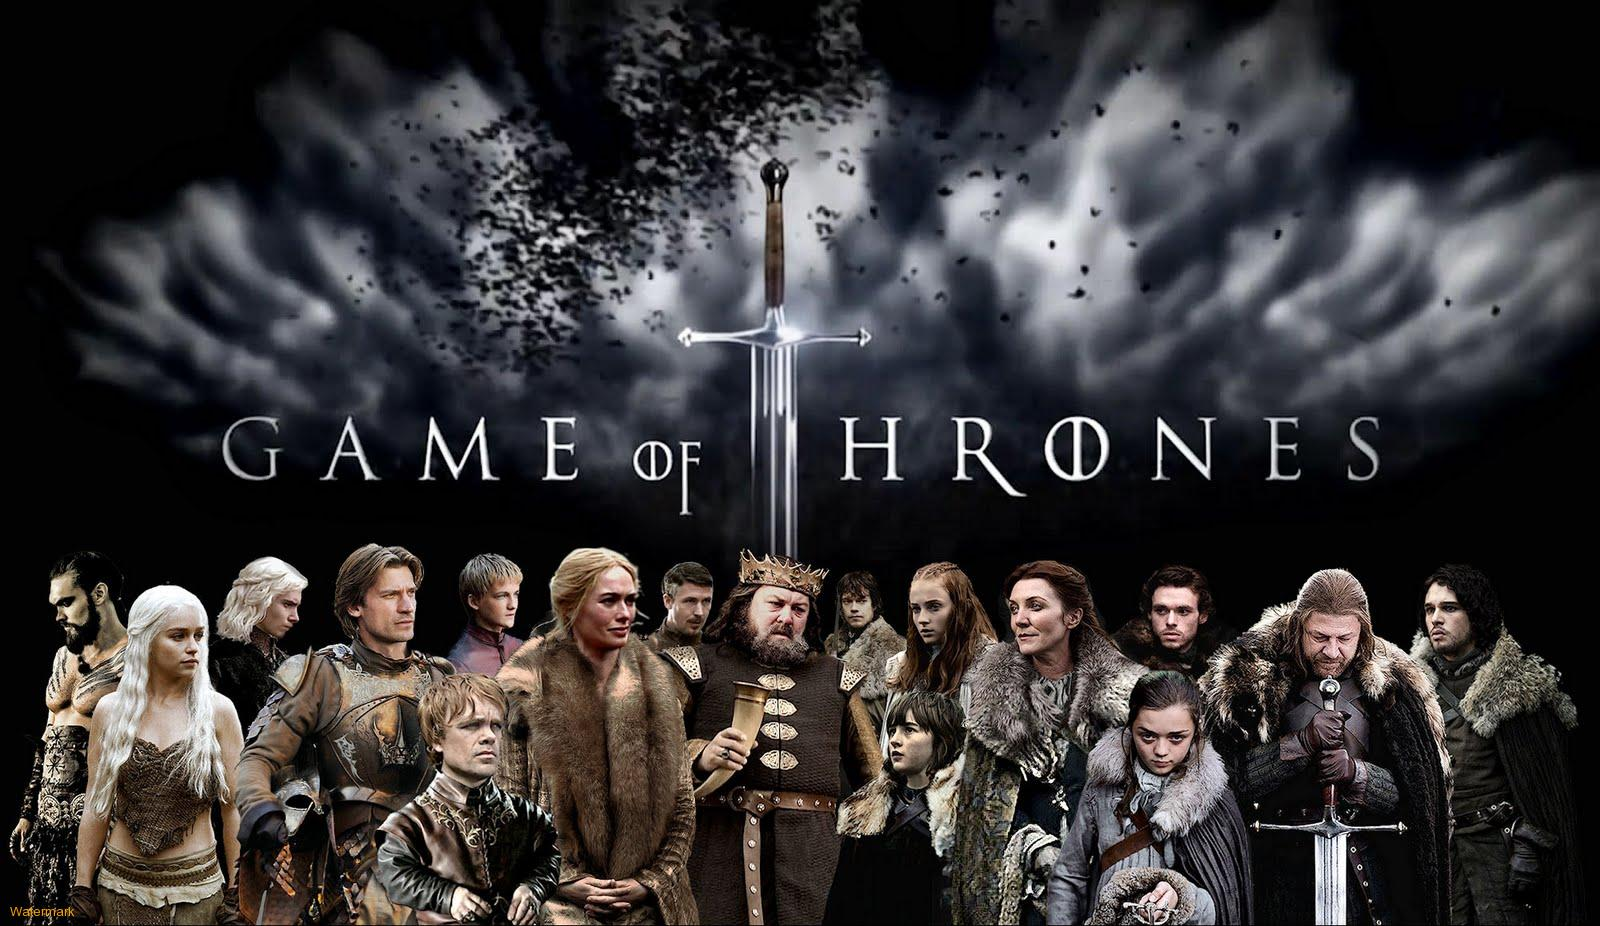 http://4.bp.blogspot.com/-vHZfmzb0tYQ/TvINYSBTCQI/AAAAAAAAAS0/zvNxRP06CLs/s1600/Game-of-Thrones-Cast-Wallpaper-1.jpeg